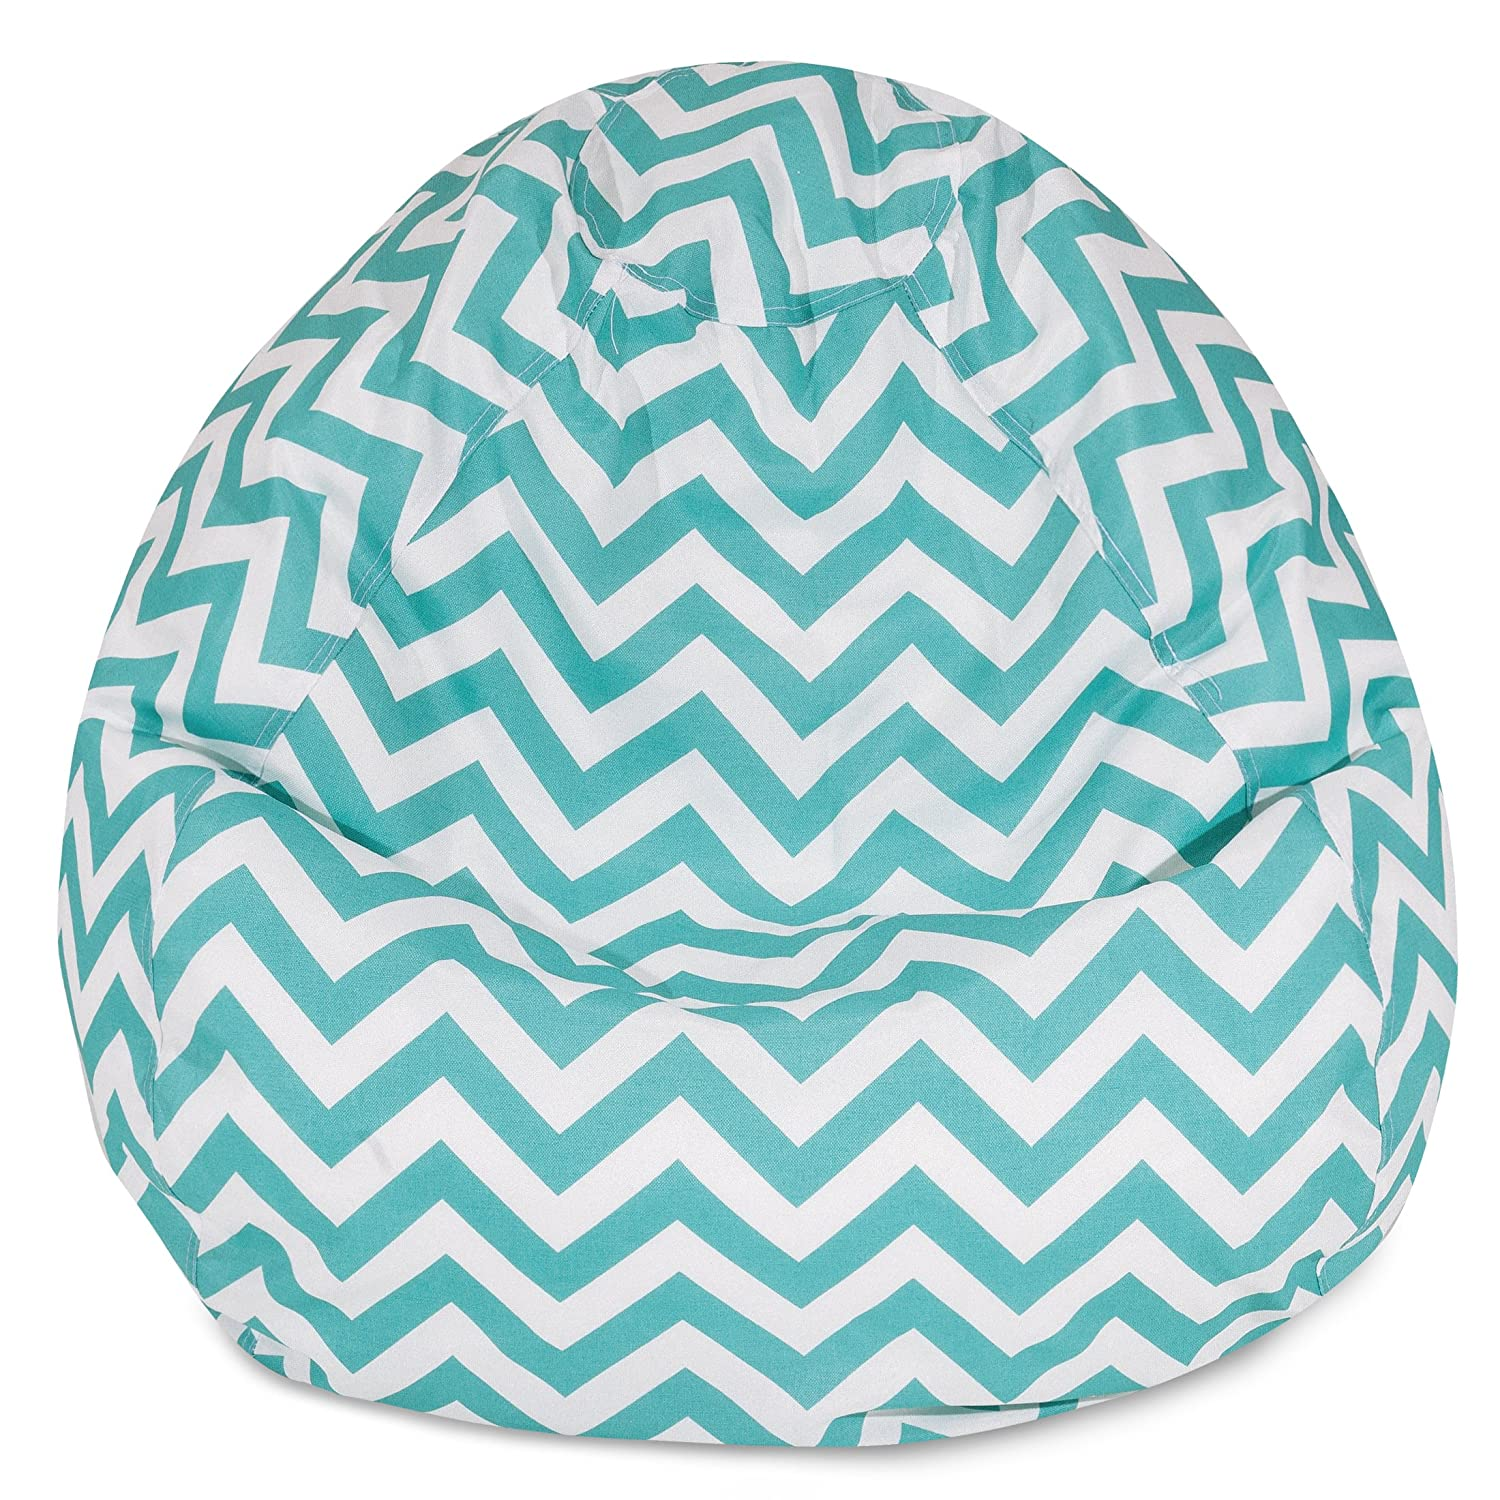 sensory bean bag chair